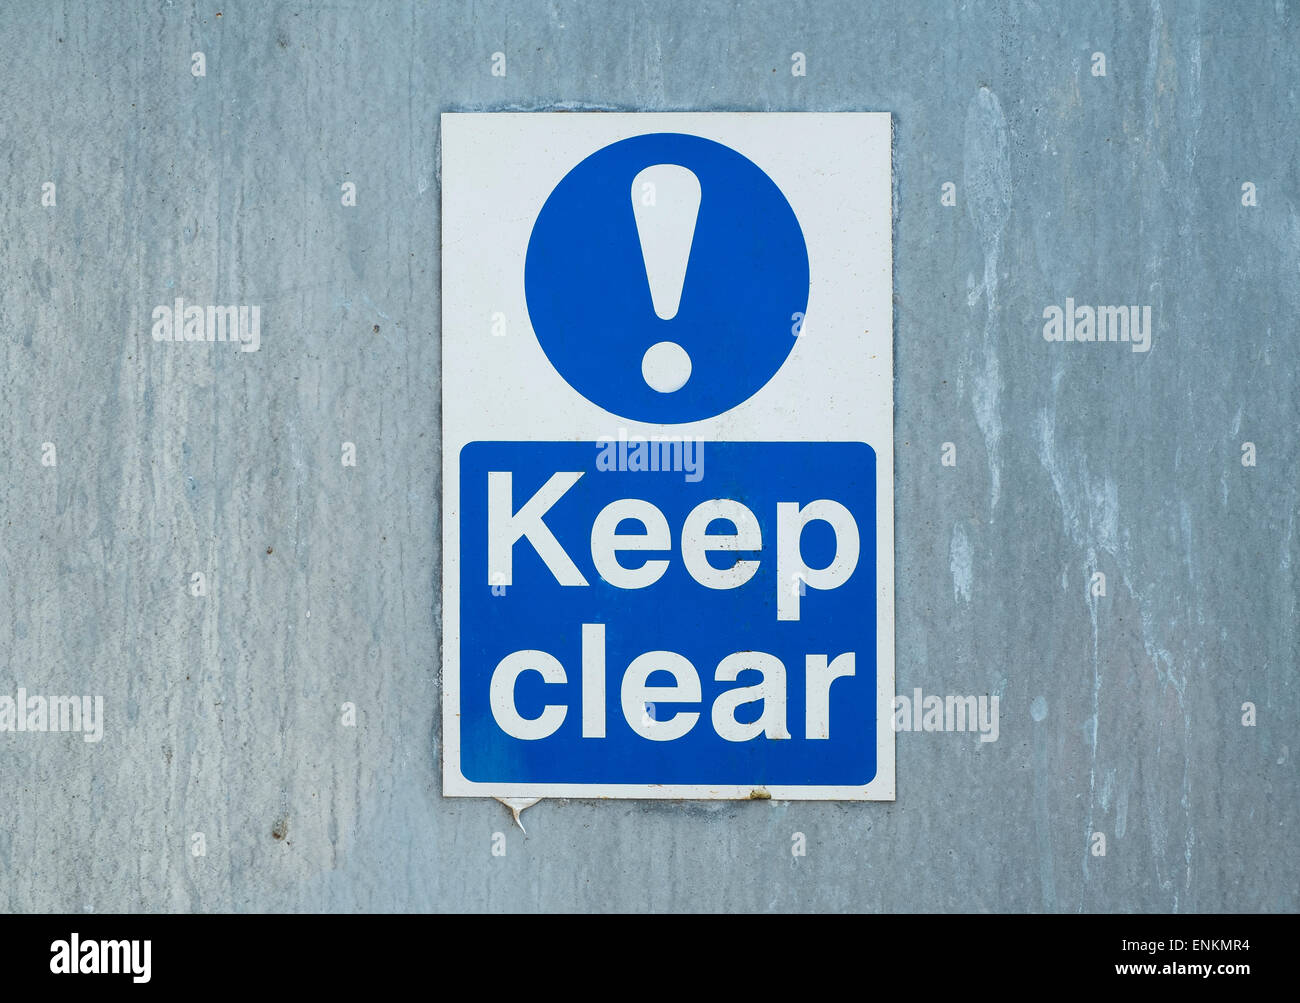 Keep clear sign notice - Stock Image